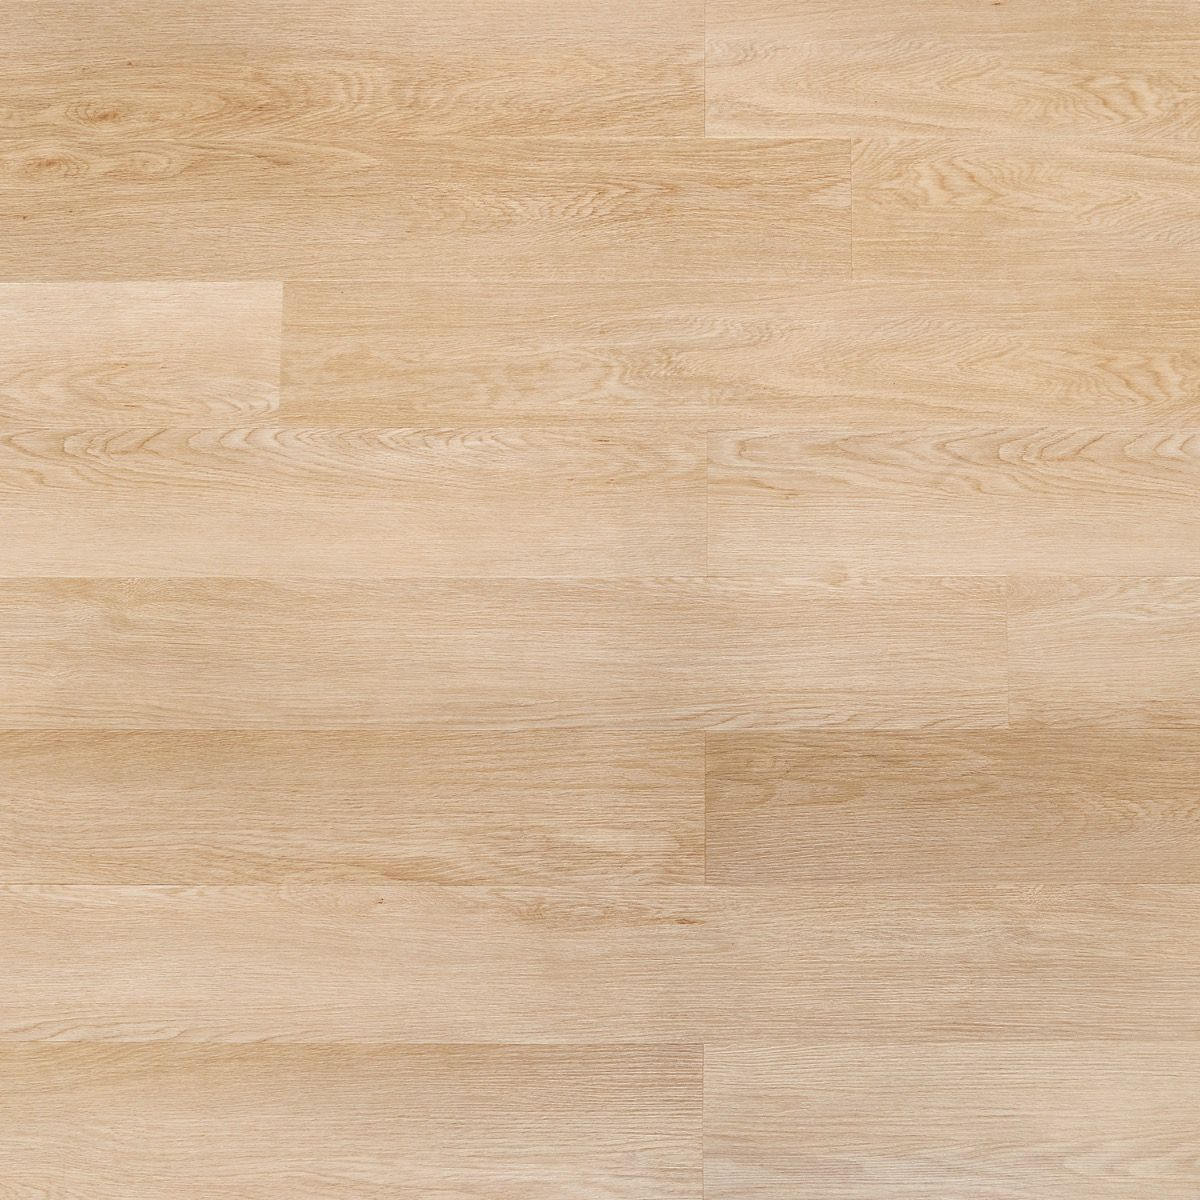 Katone Highland Oak Brined 6x48 Glue Down Luxury Vinyl Tile